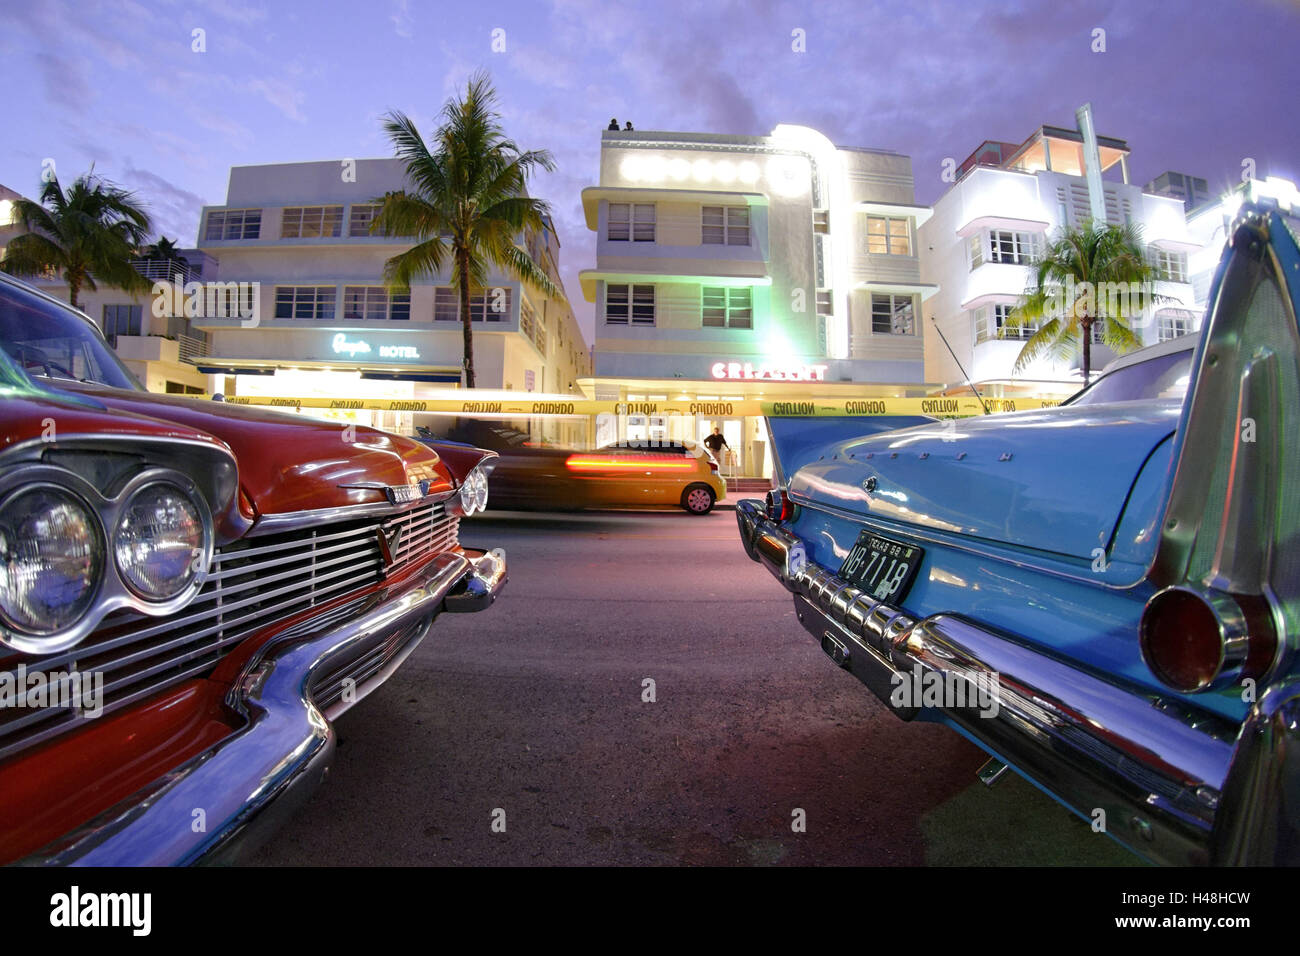 Two Plymouth Belvedere Convertibles, year of manufacture 1957, the fifties, American vintage cars, Ocean Drive, - Stock Image